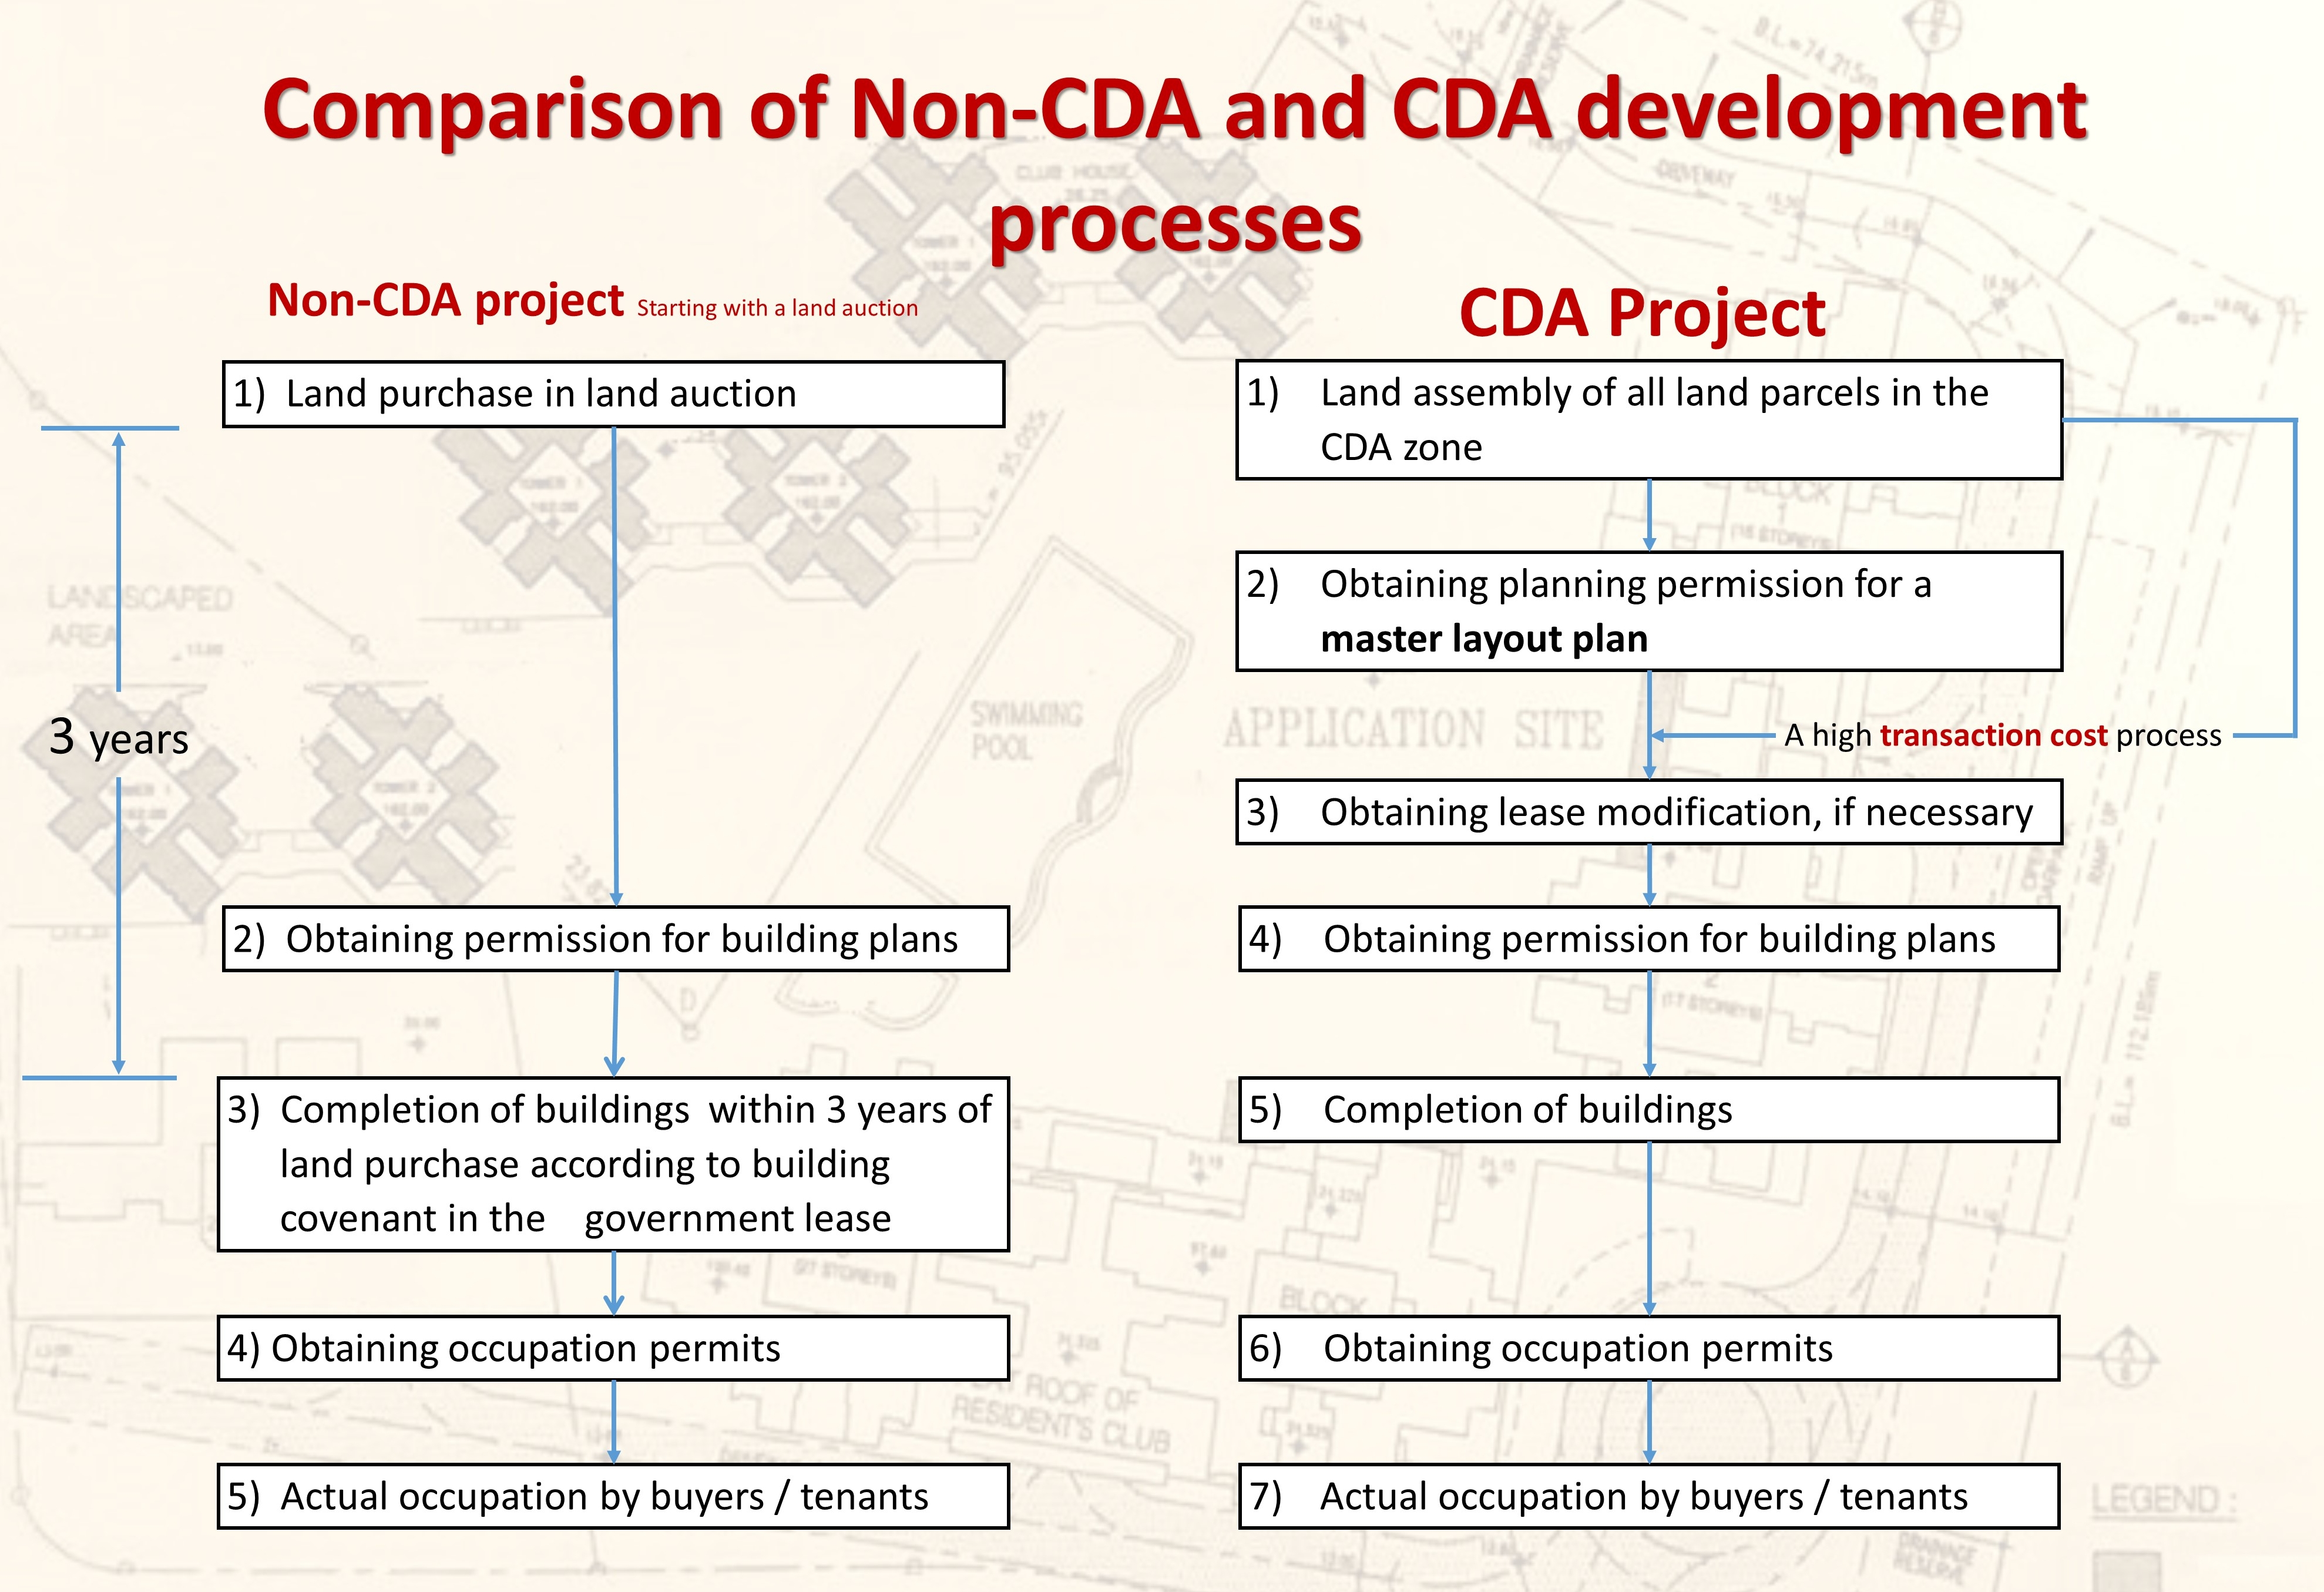 Repeated Planning Applications by Developers under Statutory Zoning: A Hong Kong Case Study of Delays in Private Residential Development